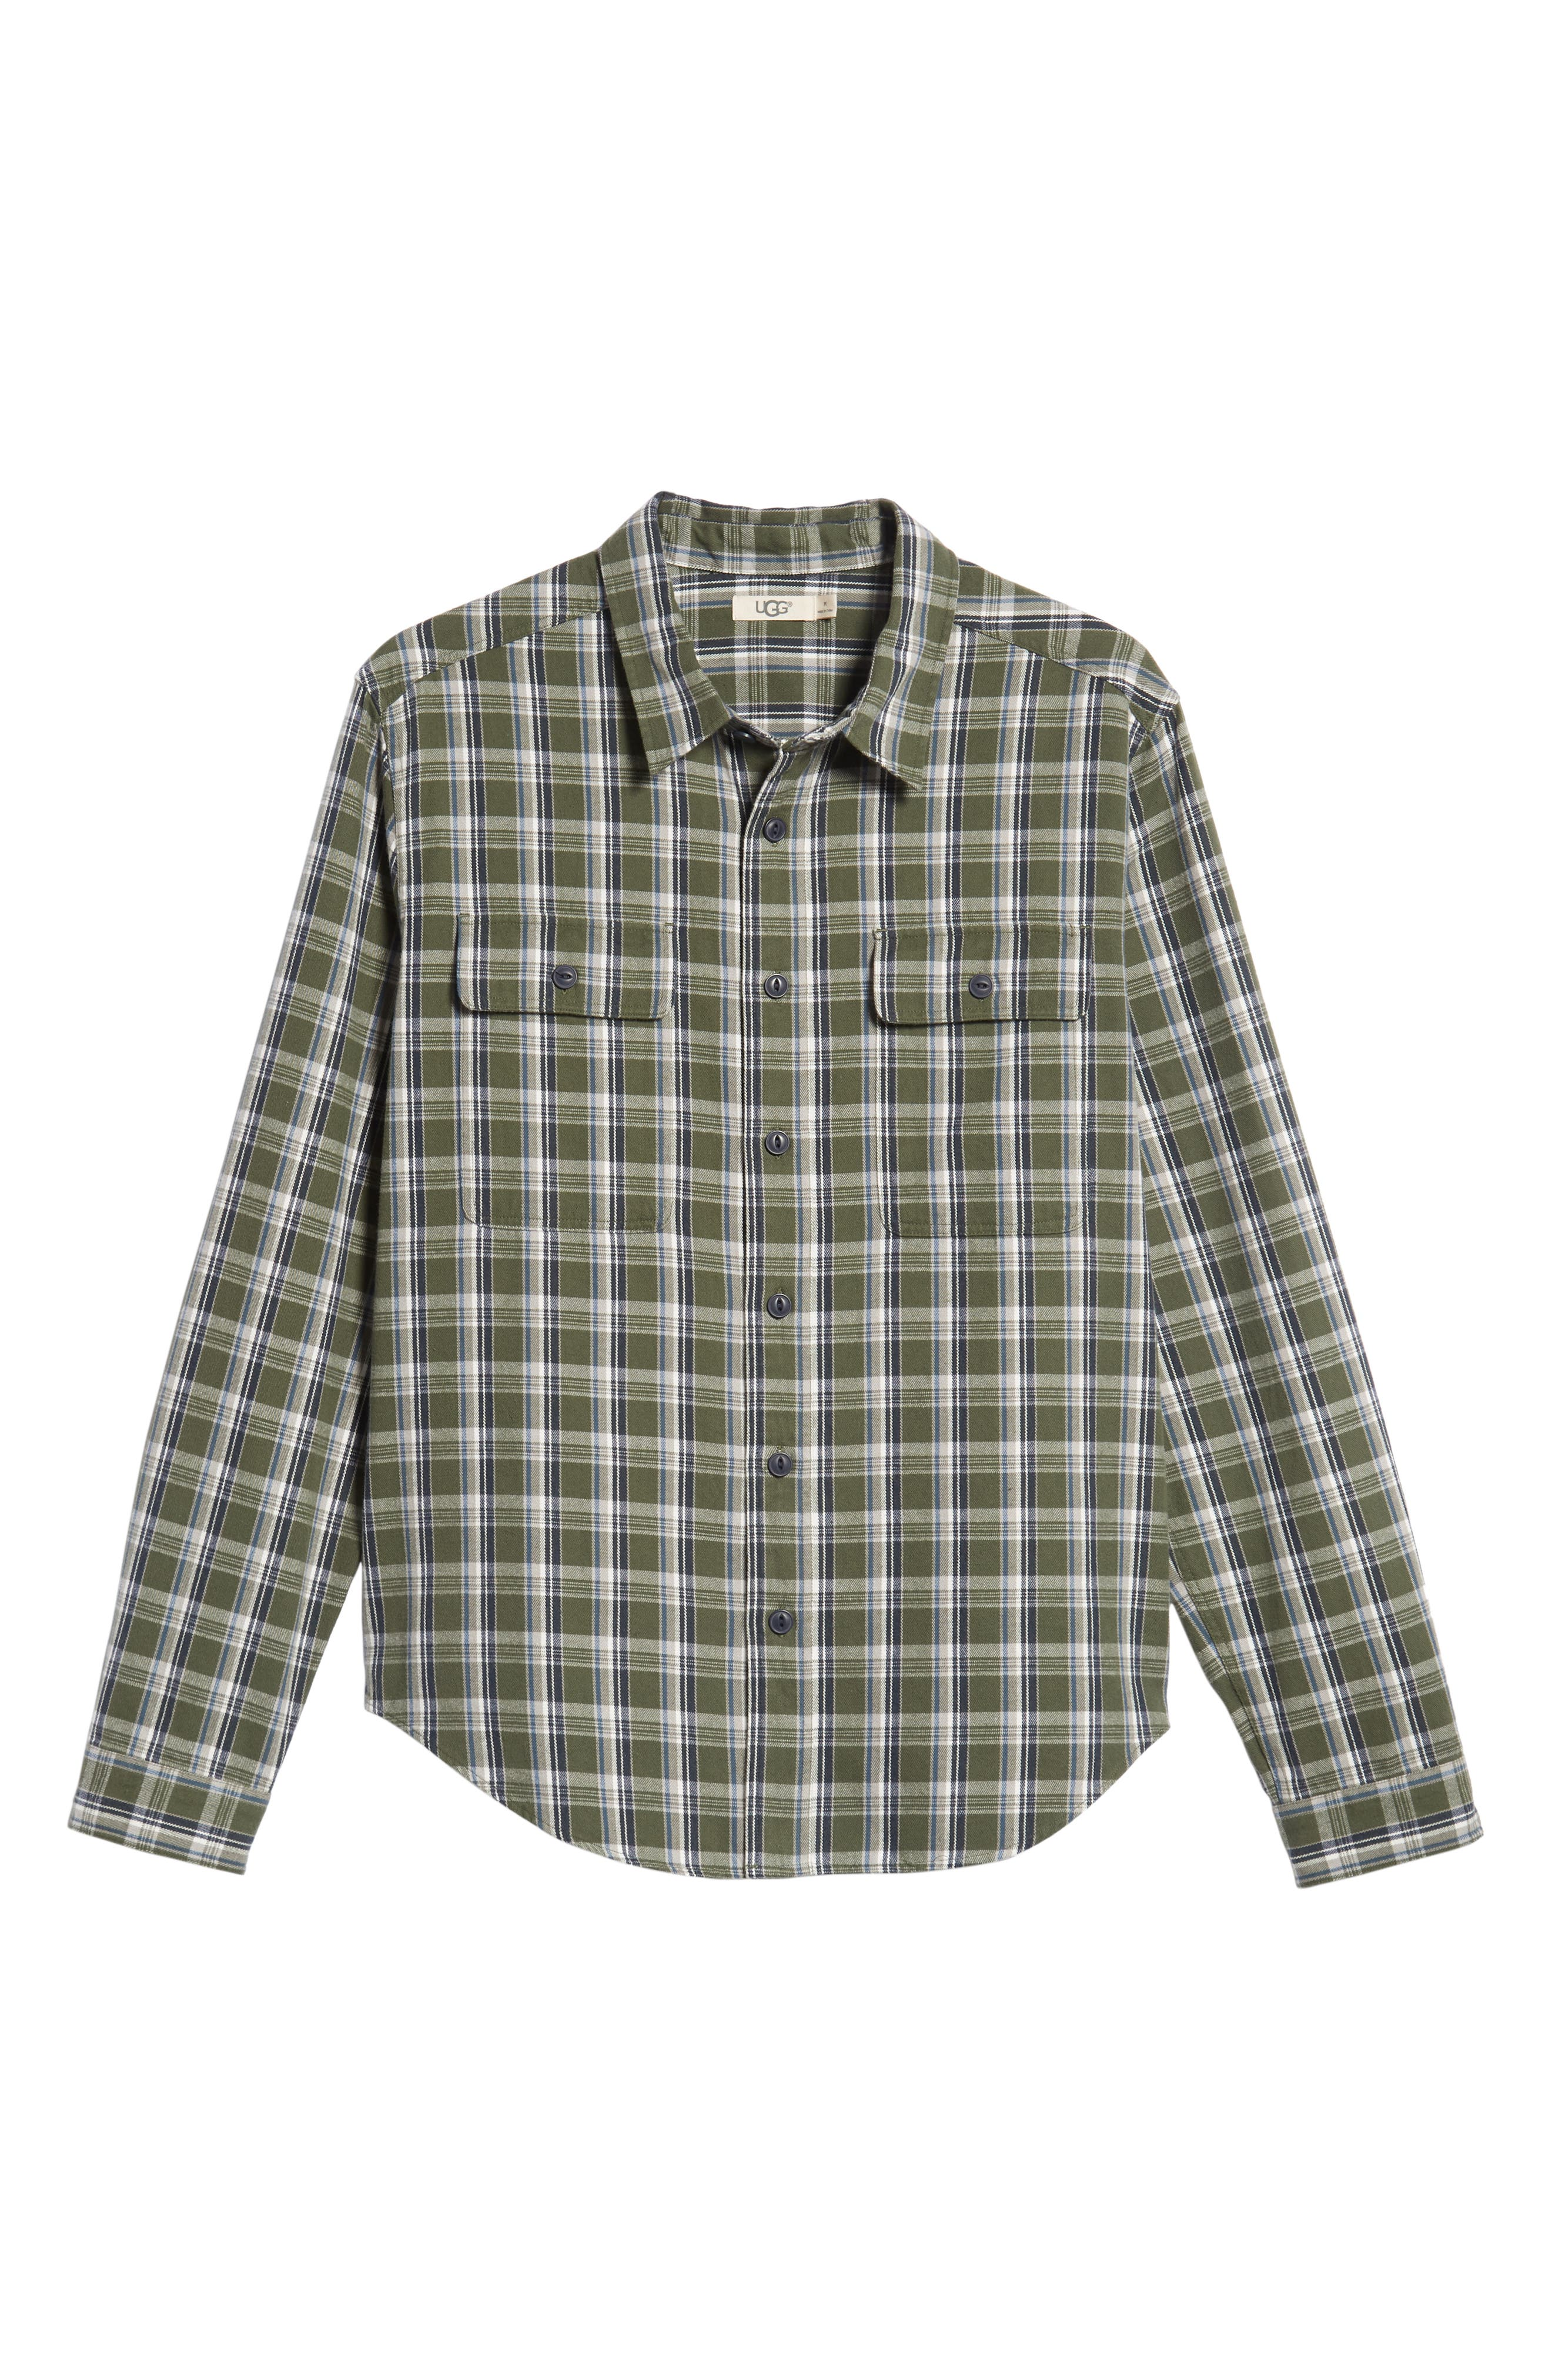 UGG<SUP>®</SUP>, Anders Flannel Sport Shirt, Alternate thumbnail 5, color, ARMY GREEN PLAID